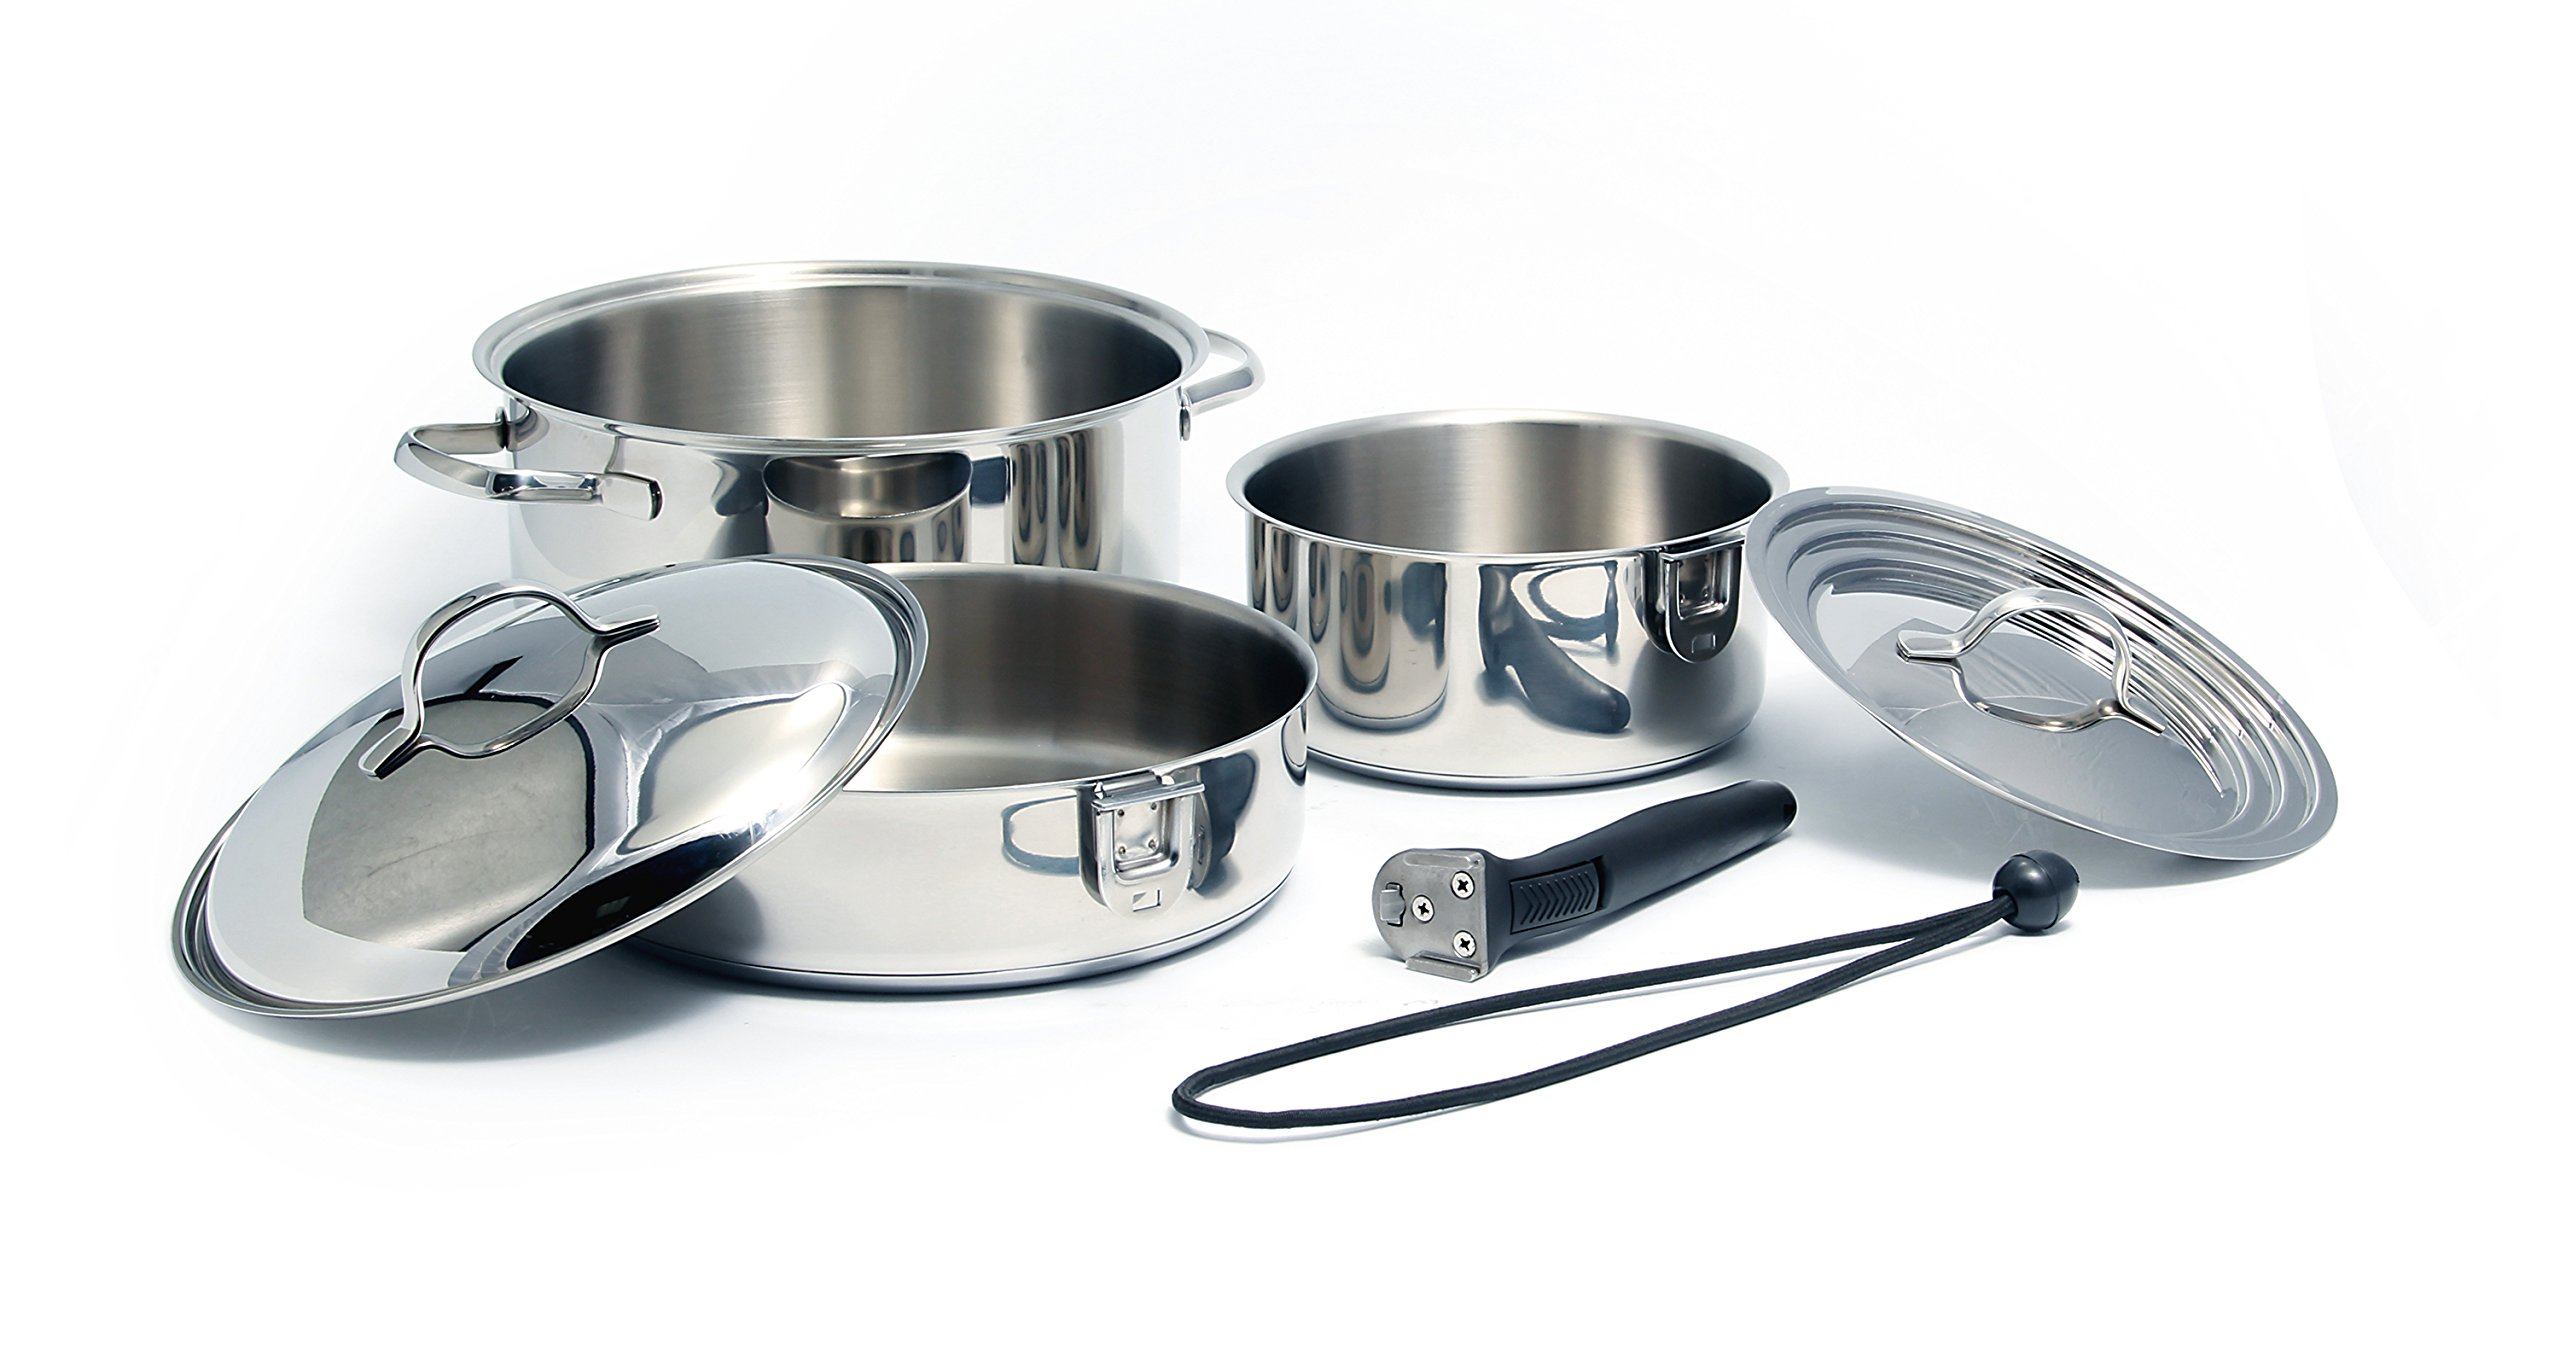 Camco 43920 Stainless Steel 7 Piece Nesting Cookware Set